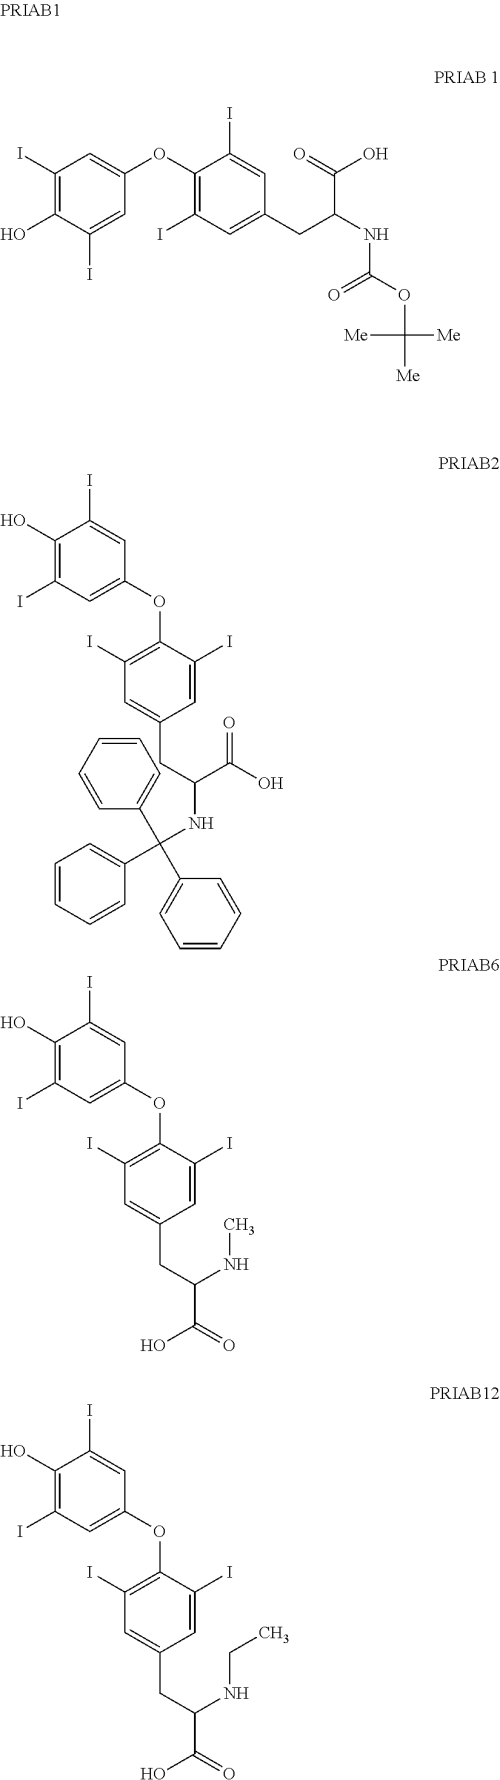 small resolution of figure us20120315320a1 20121213 c00003